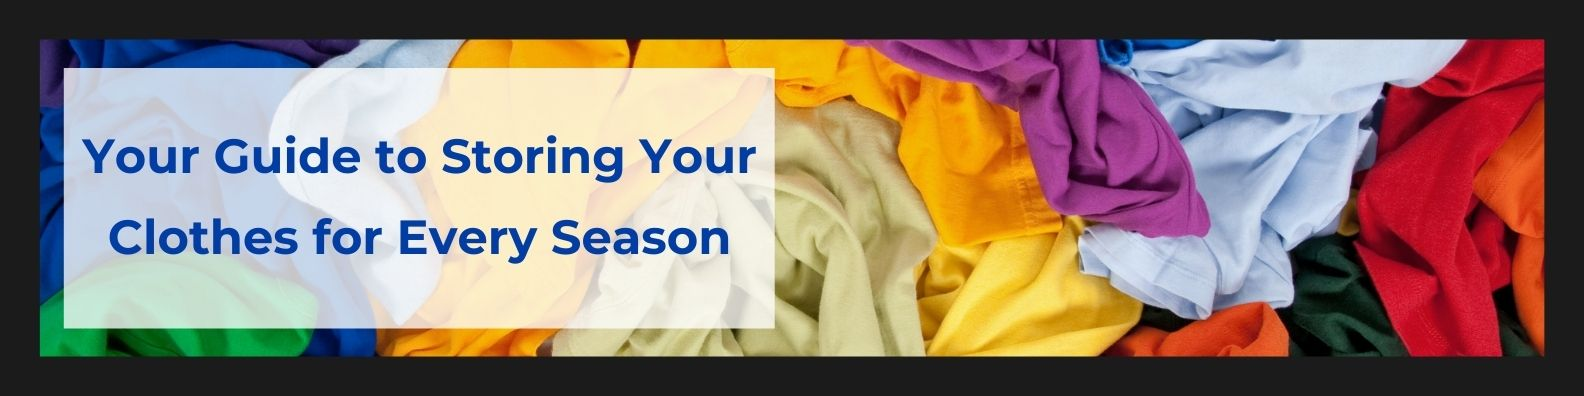 Your Guide to Storing Your Clothes for Every Season